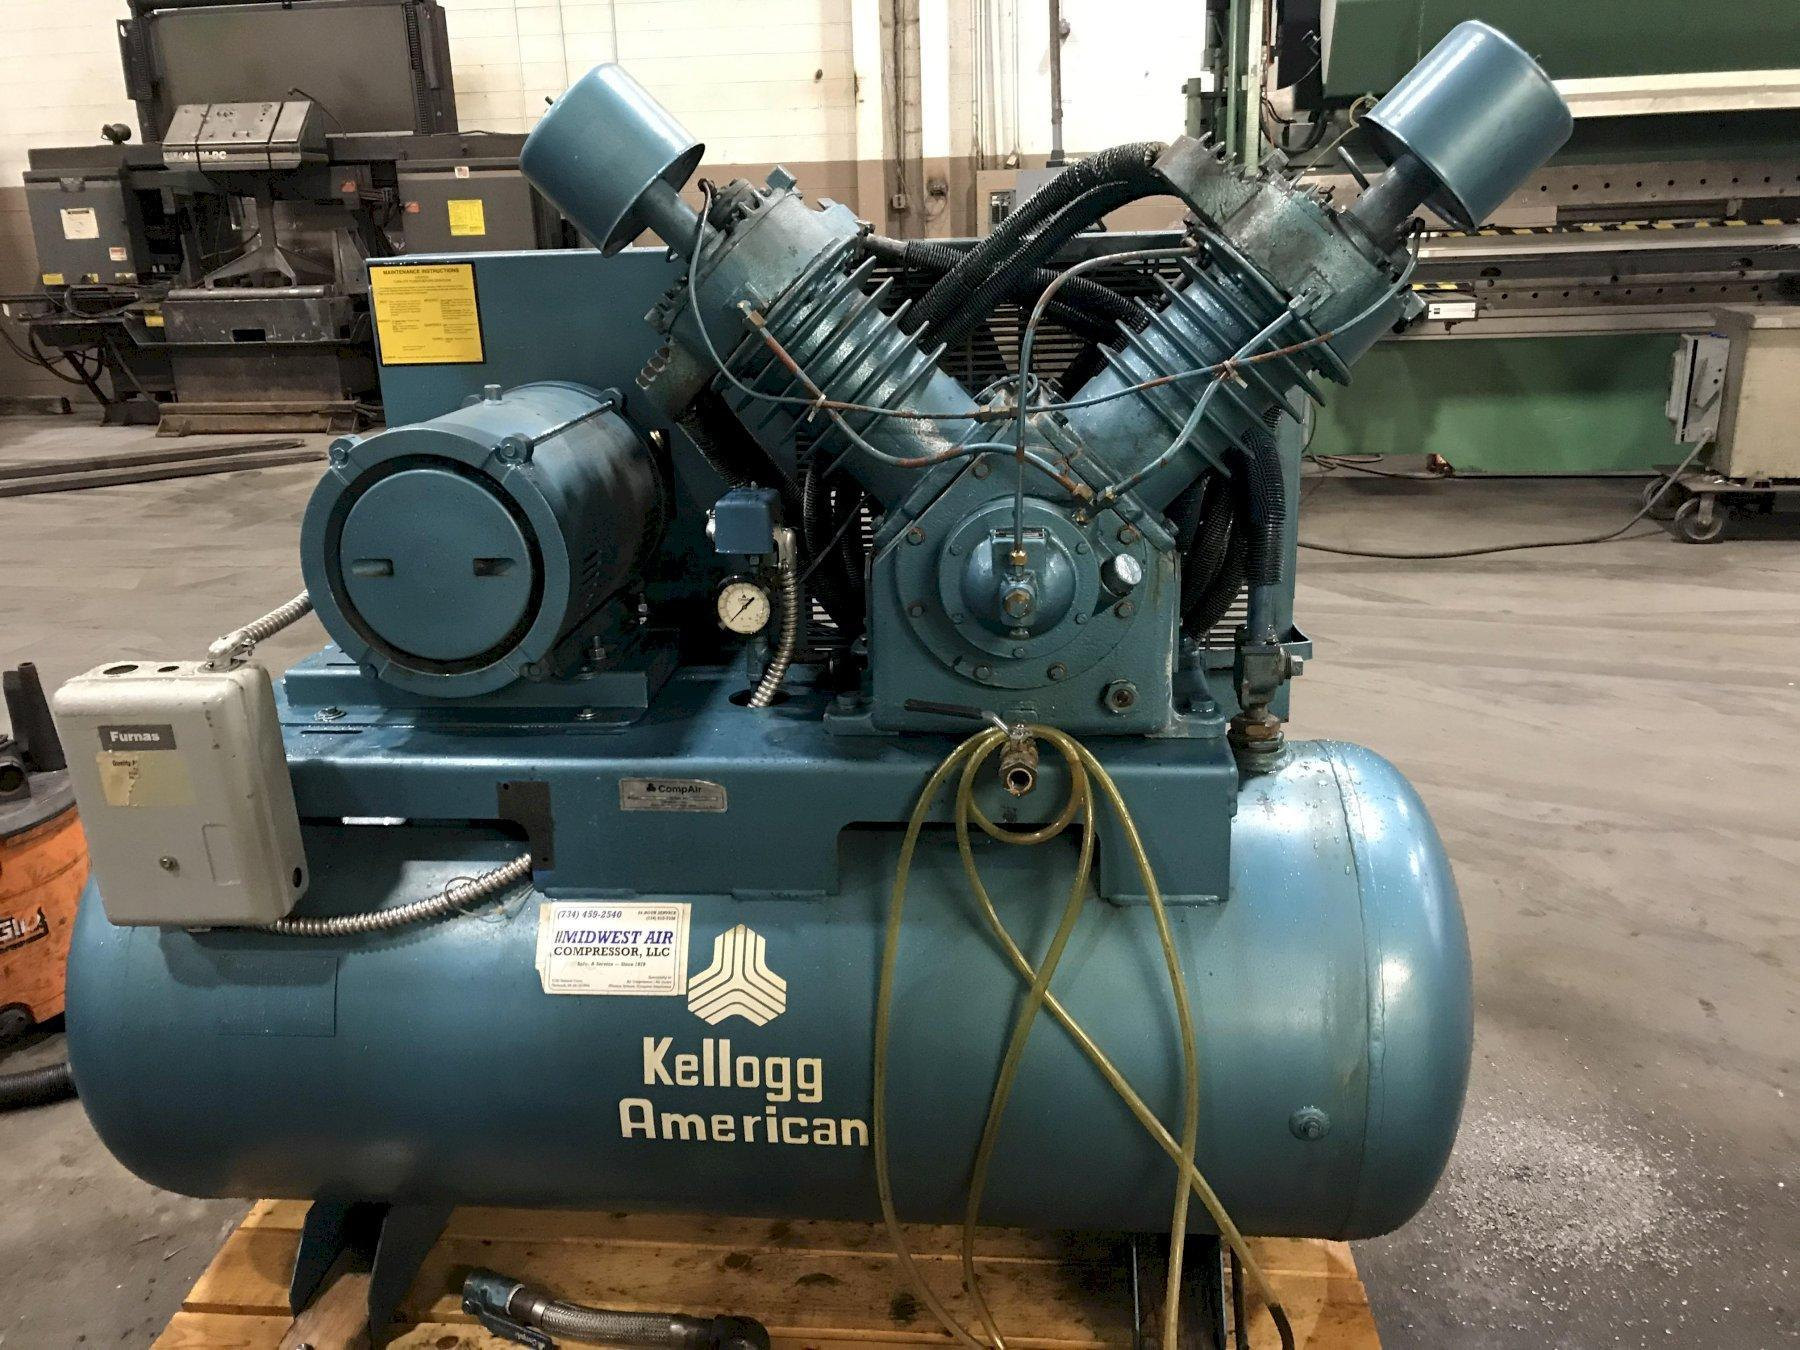 USED KELLOGG AMERICAN / COMPAIR 2 STAGE TANK MOUNTED AIR COMPRESSOR, Stock no. 10668